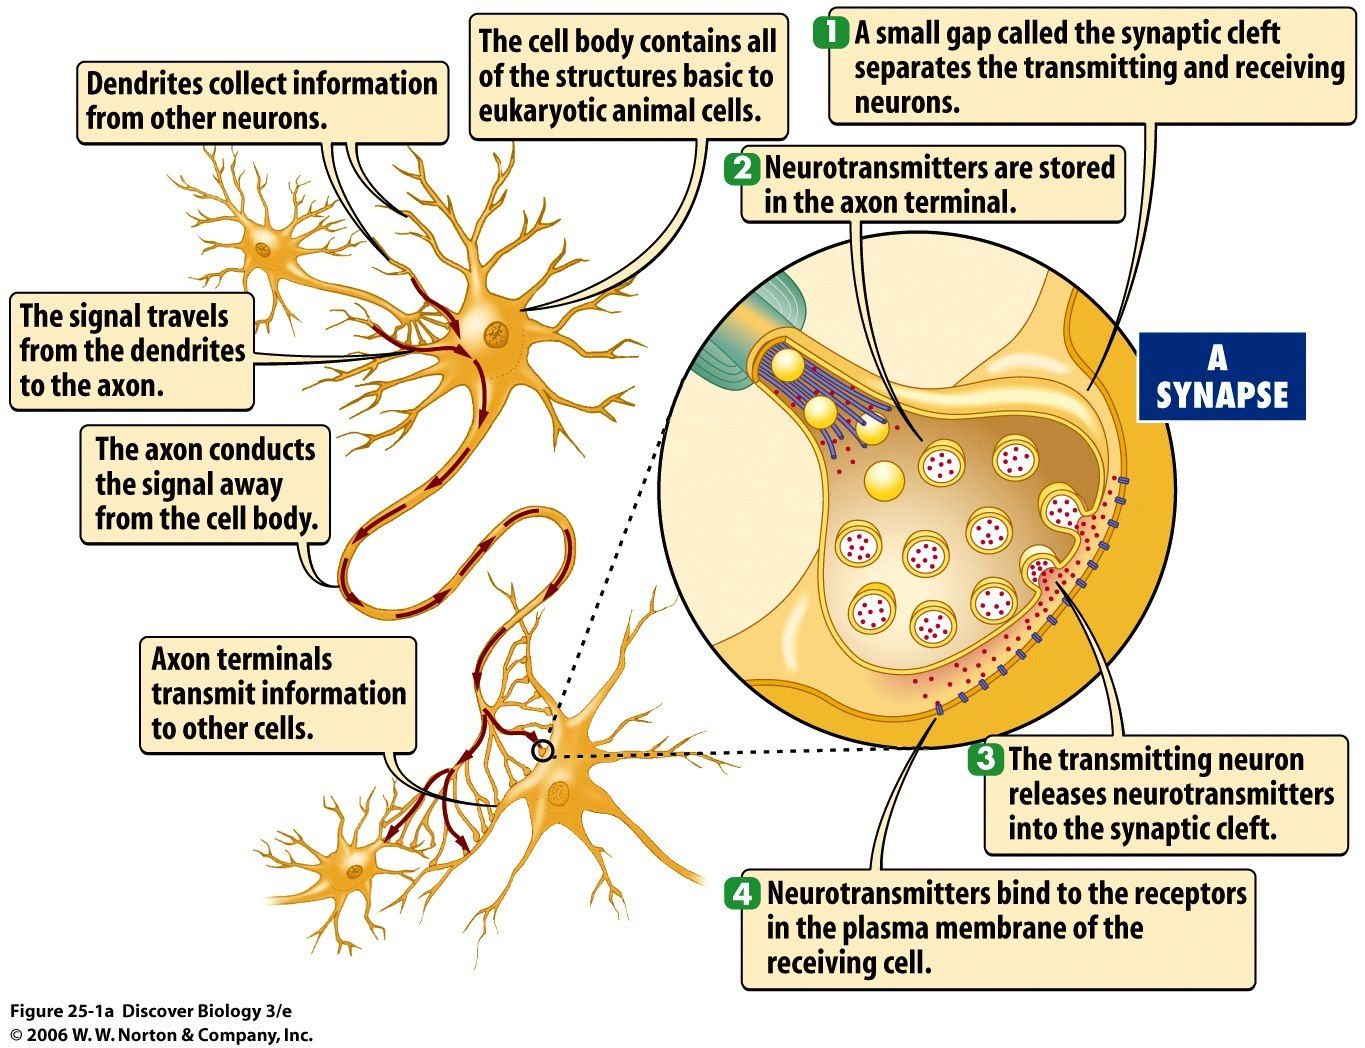 BIO 7 Preview for April 8 | Human anatomy and physiology ...